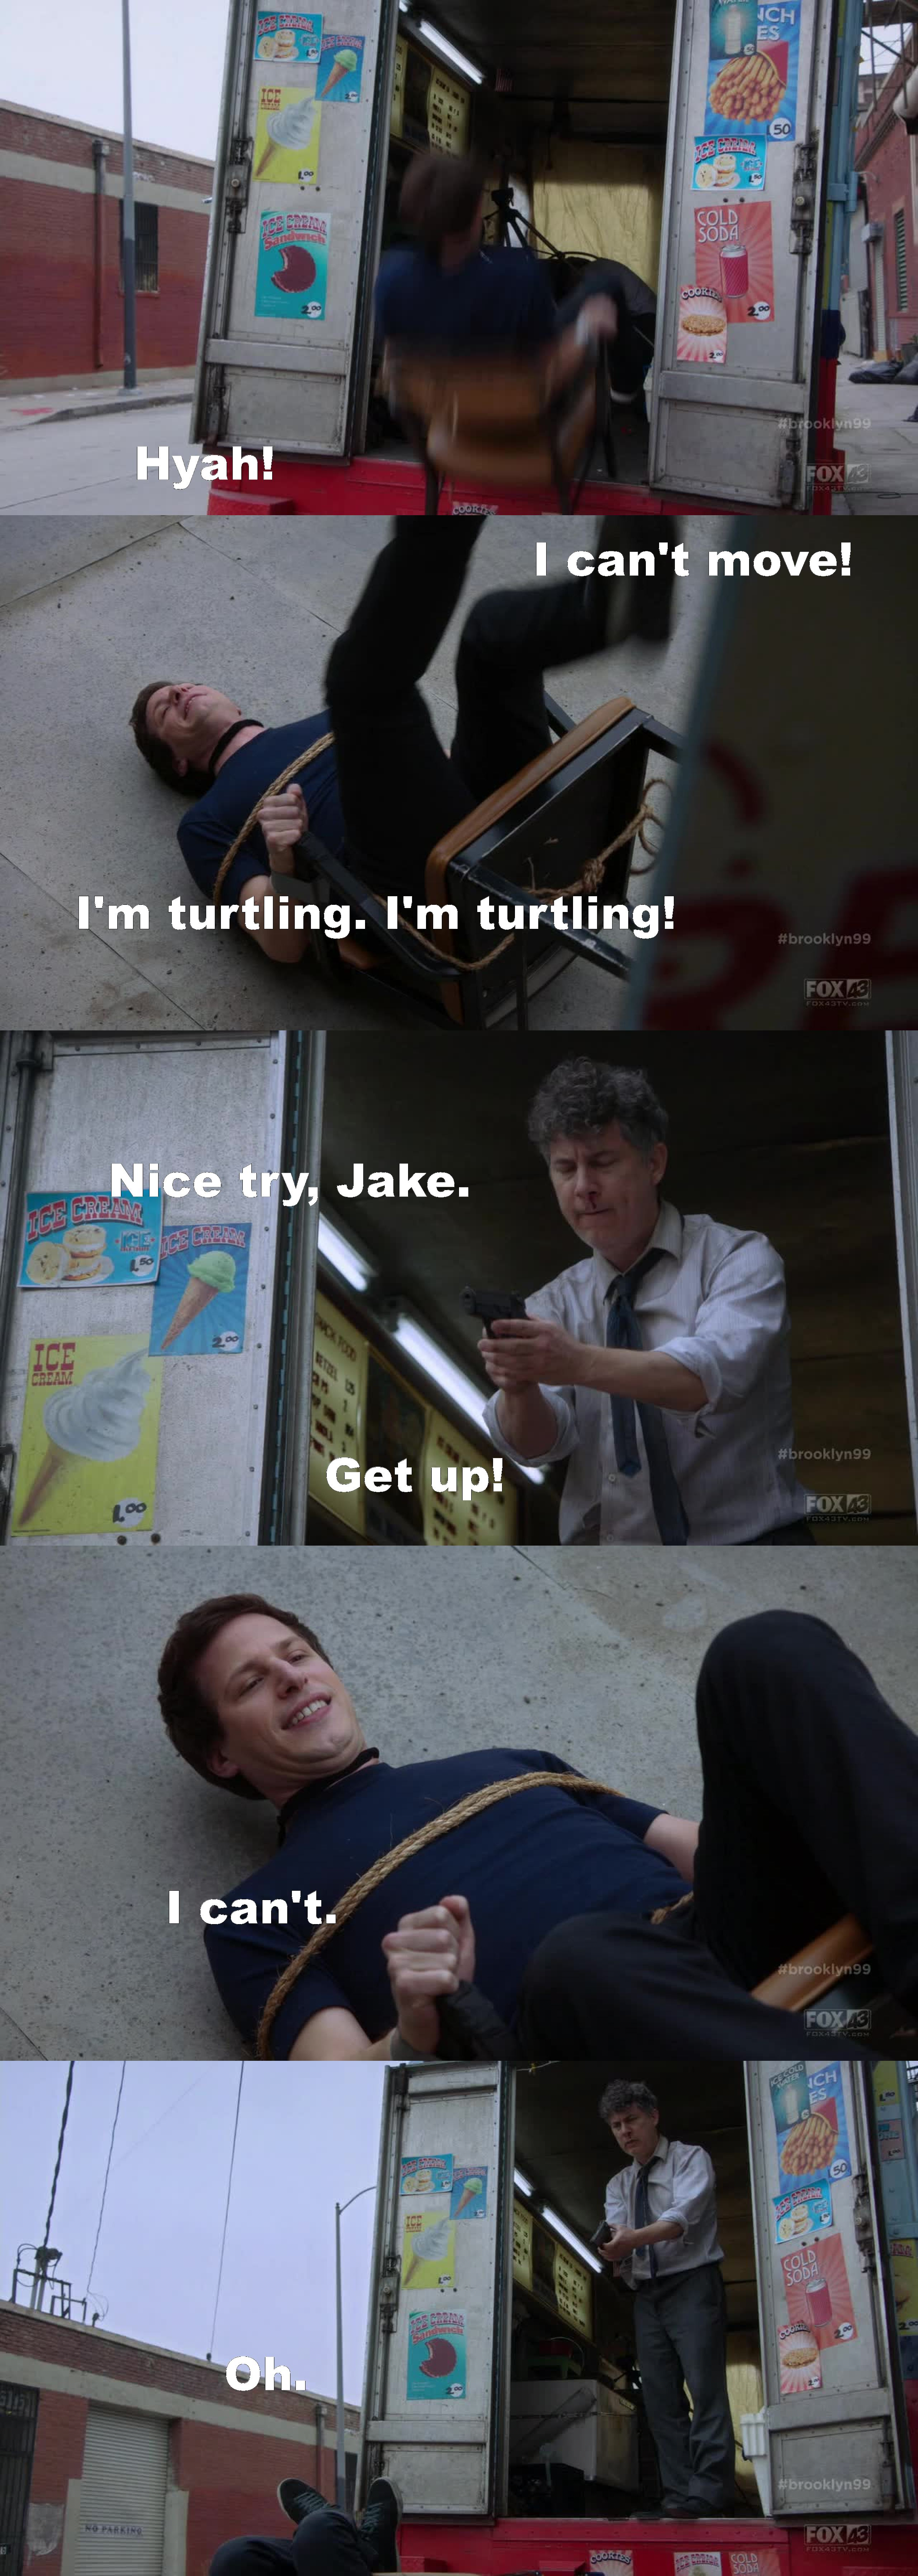 That was hilarious!! XD